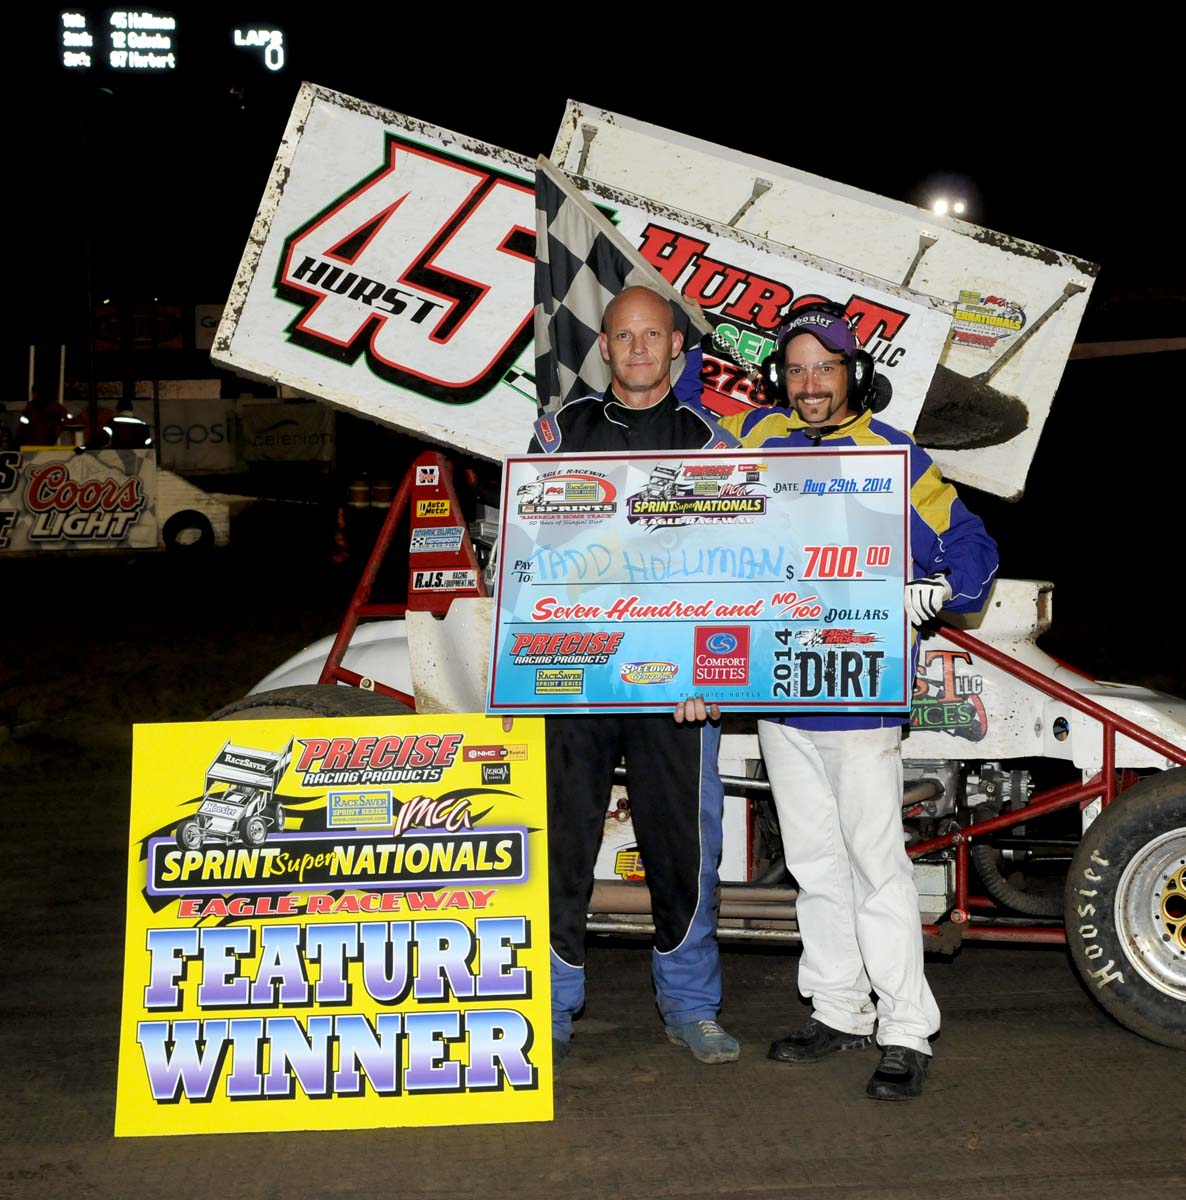 Eagle-08-29-14-671-Tadd-Holliman-with-Miss-Nebraska-Cup-Elle-Patocka-and-flagman-Billy-Lloyd-JoeOrthPhotos